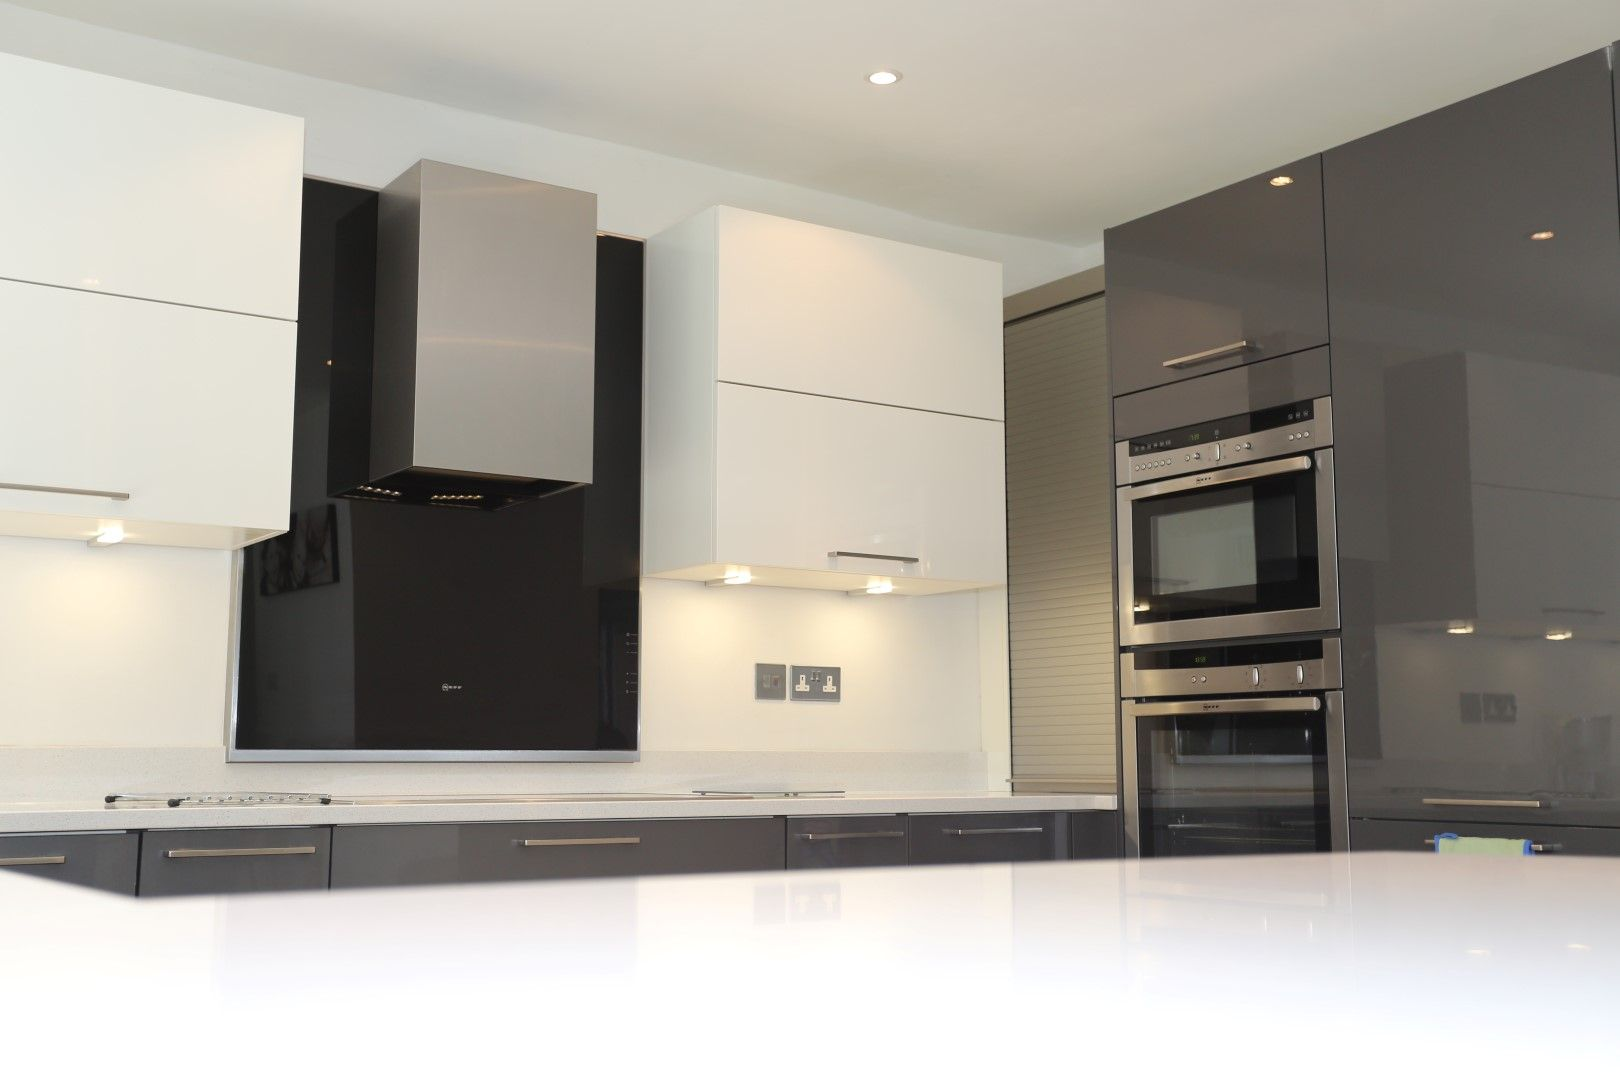 Twotone Kitchen With Shiny Magnoliacream And Anthracitegrey - Anthracite grey kitchen